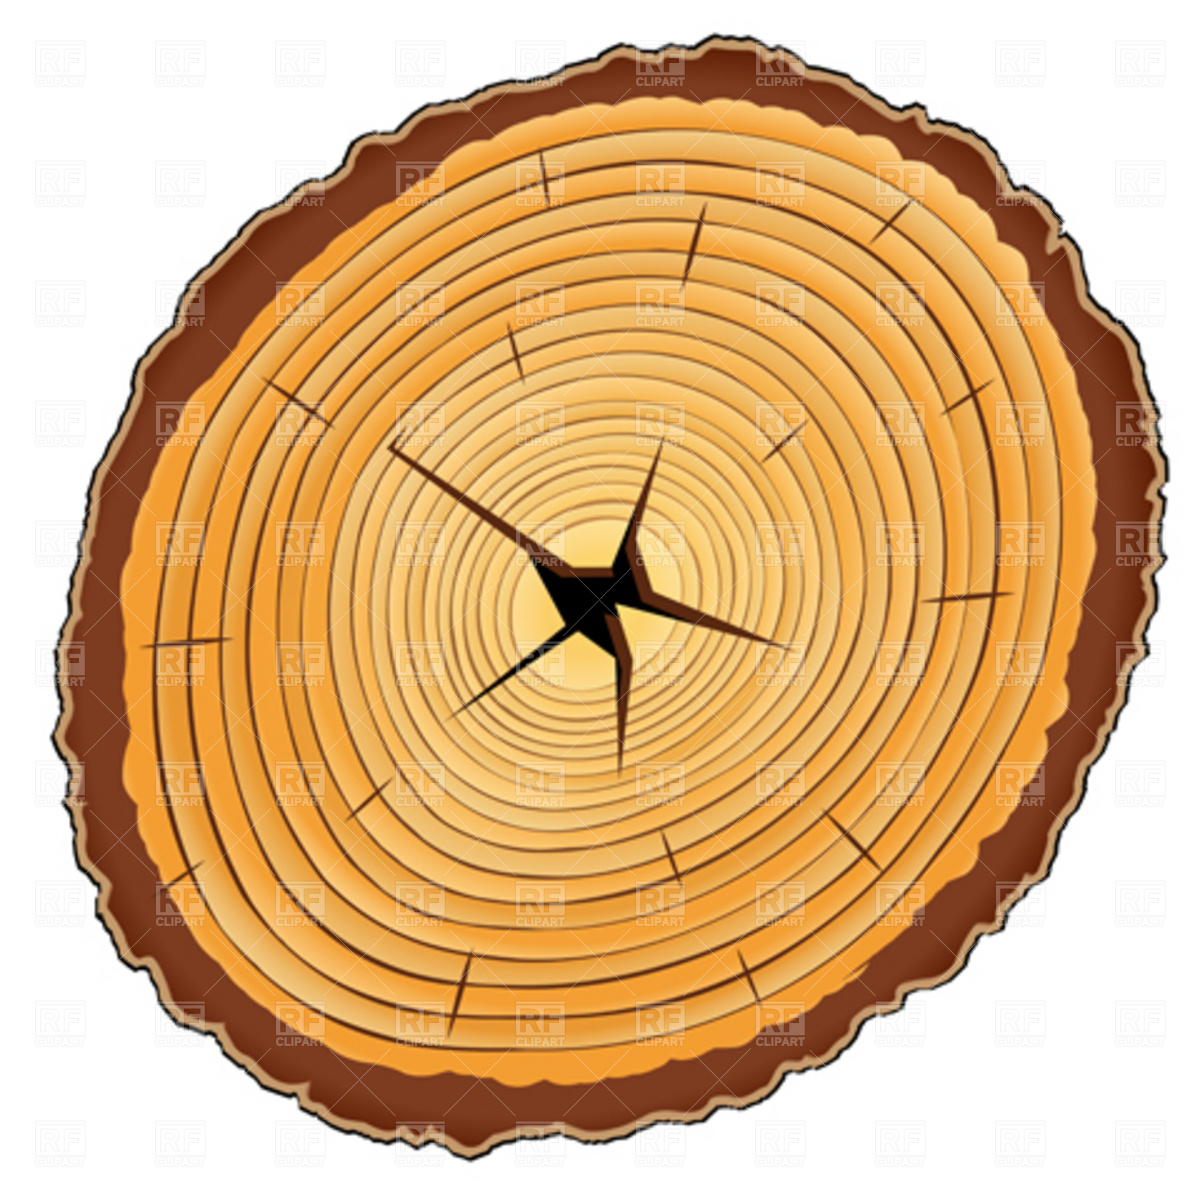 How to Cut Wood Slices